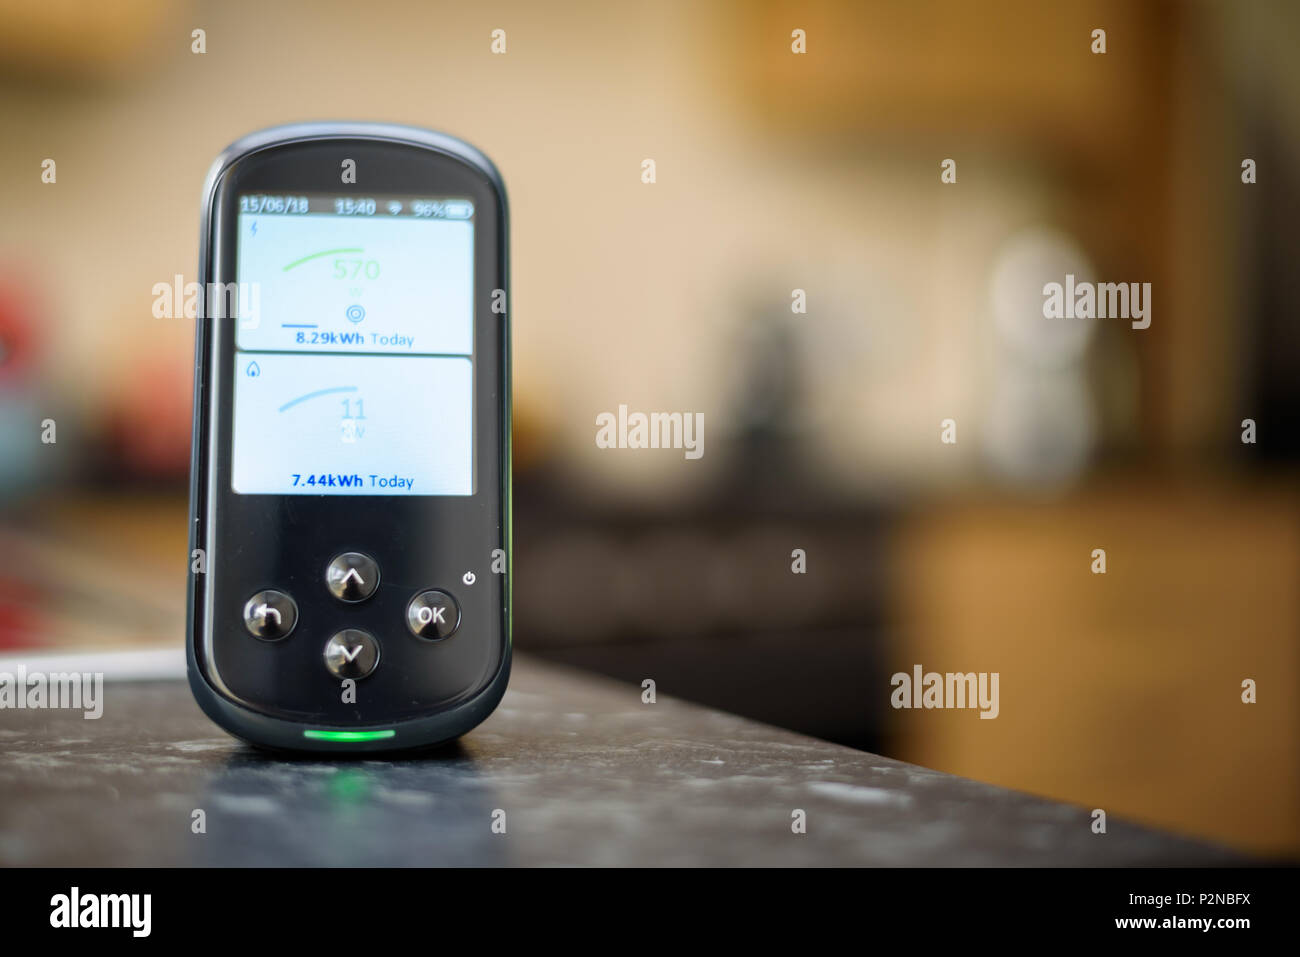 Domestic Energy Smart Meter on a Kitchen Worktop Displaying Energy Usage in Real Time - Stock Image